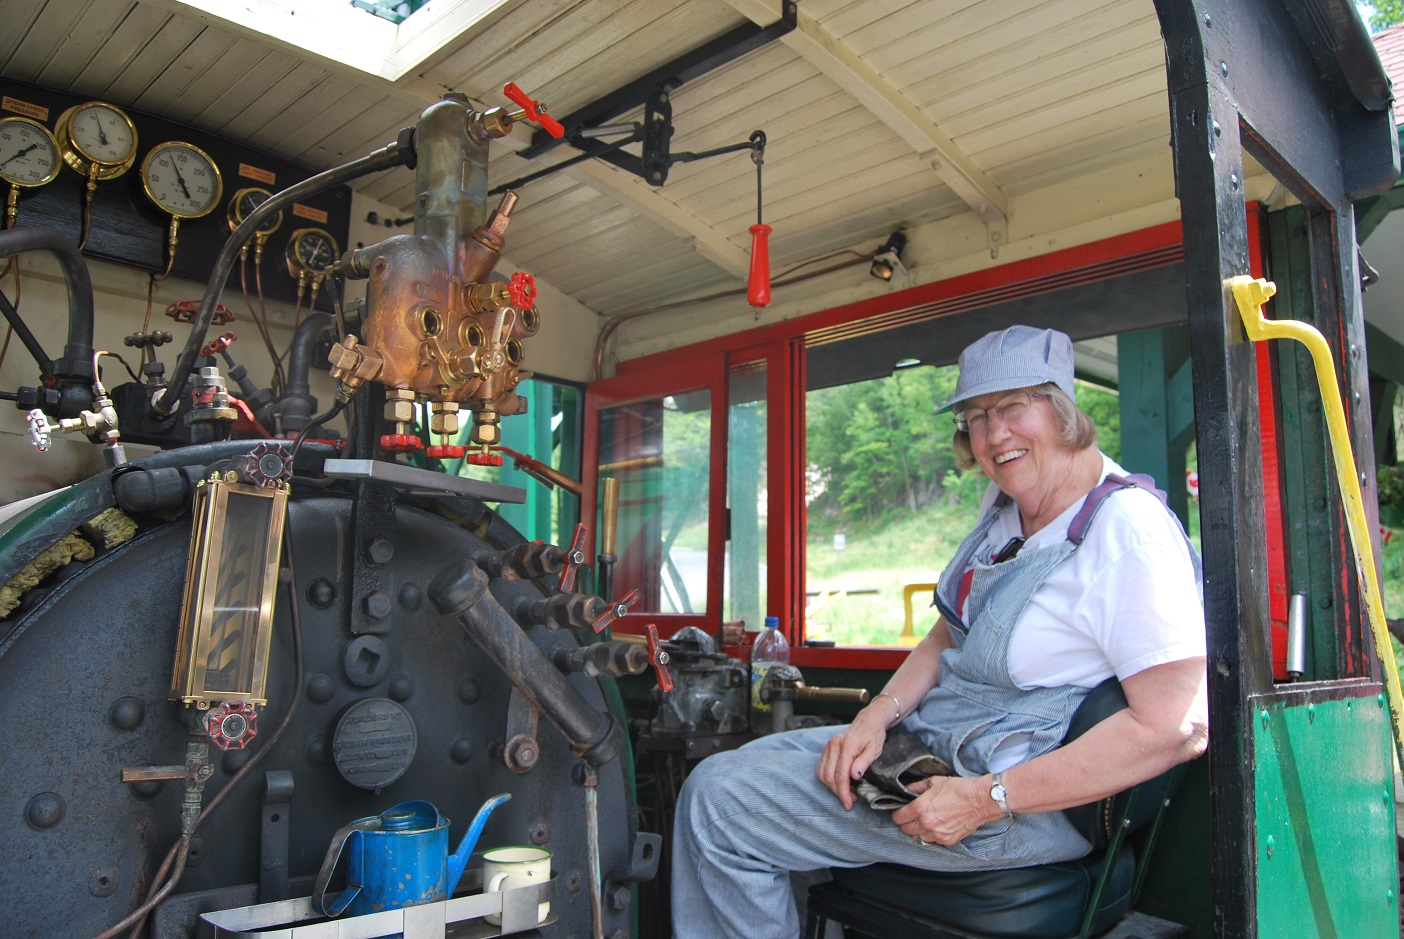 Engineer For A Day - Marge Denis